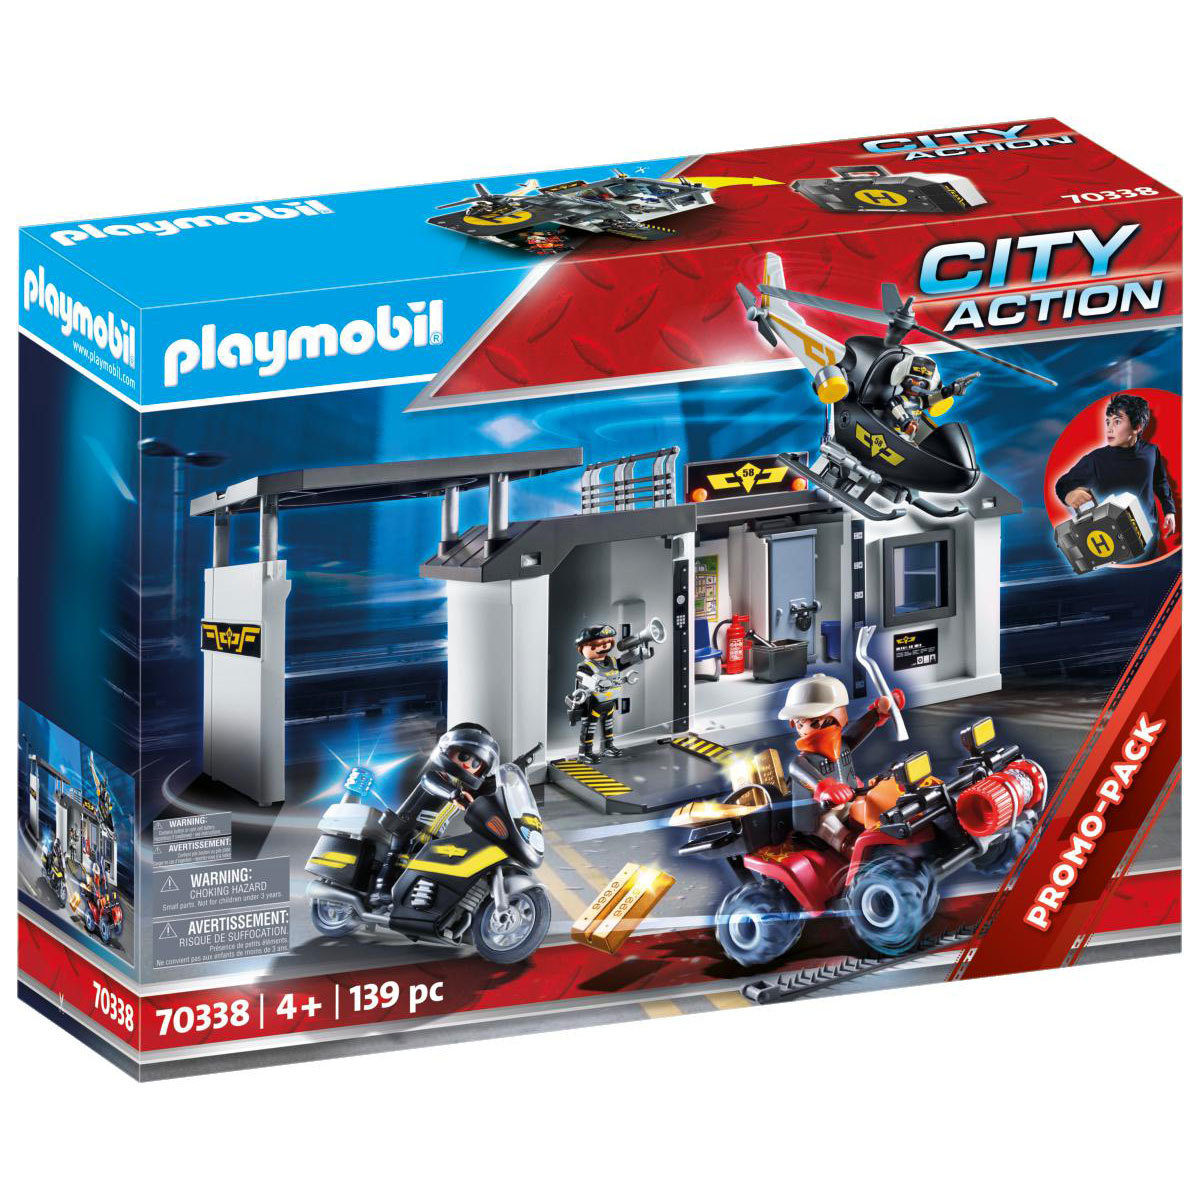 Playmobil 70338 City Action Take Along Police Station with Bikes and Helicopter from Early Learning Center